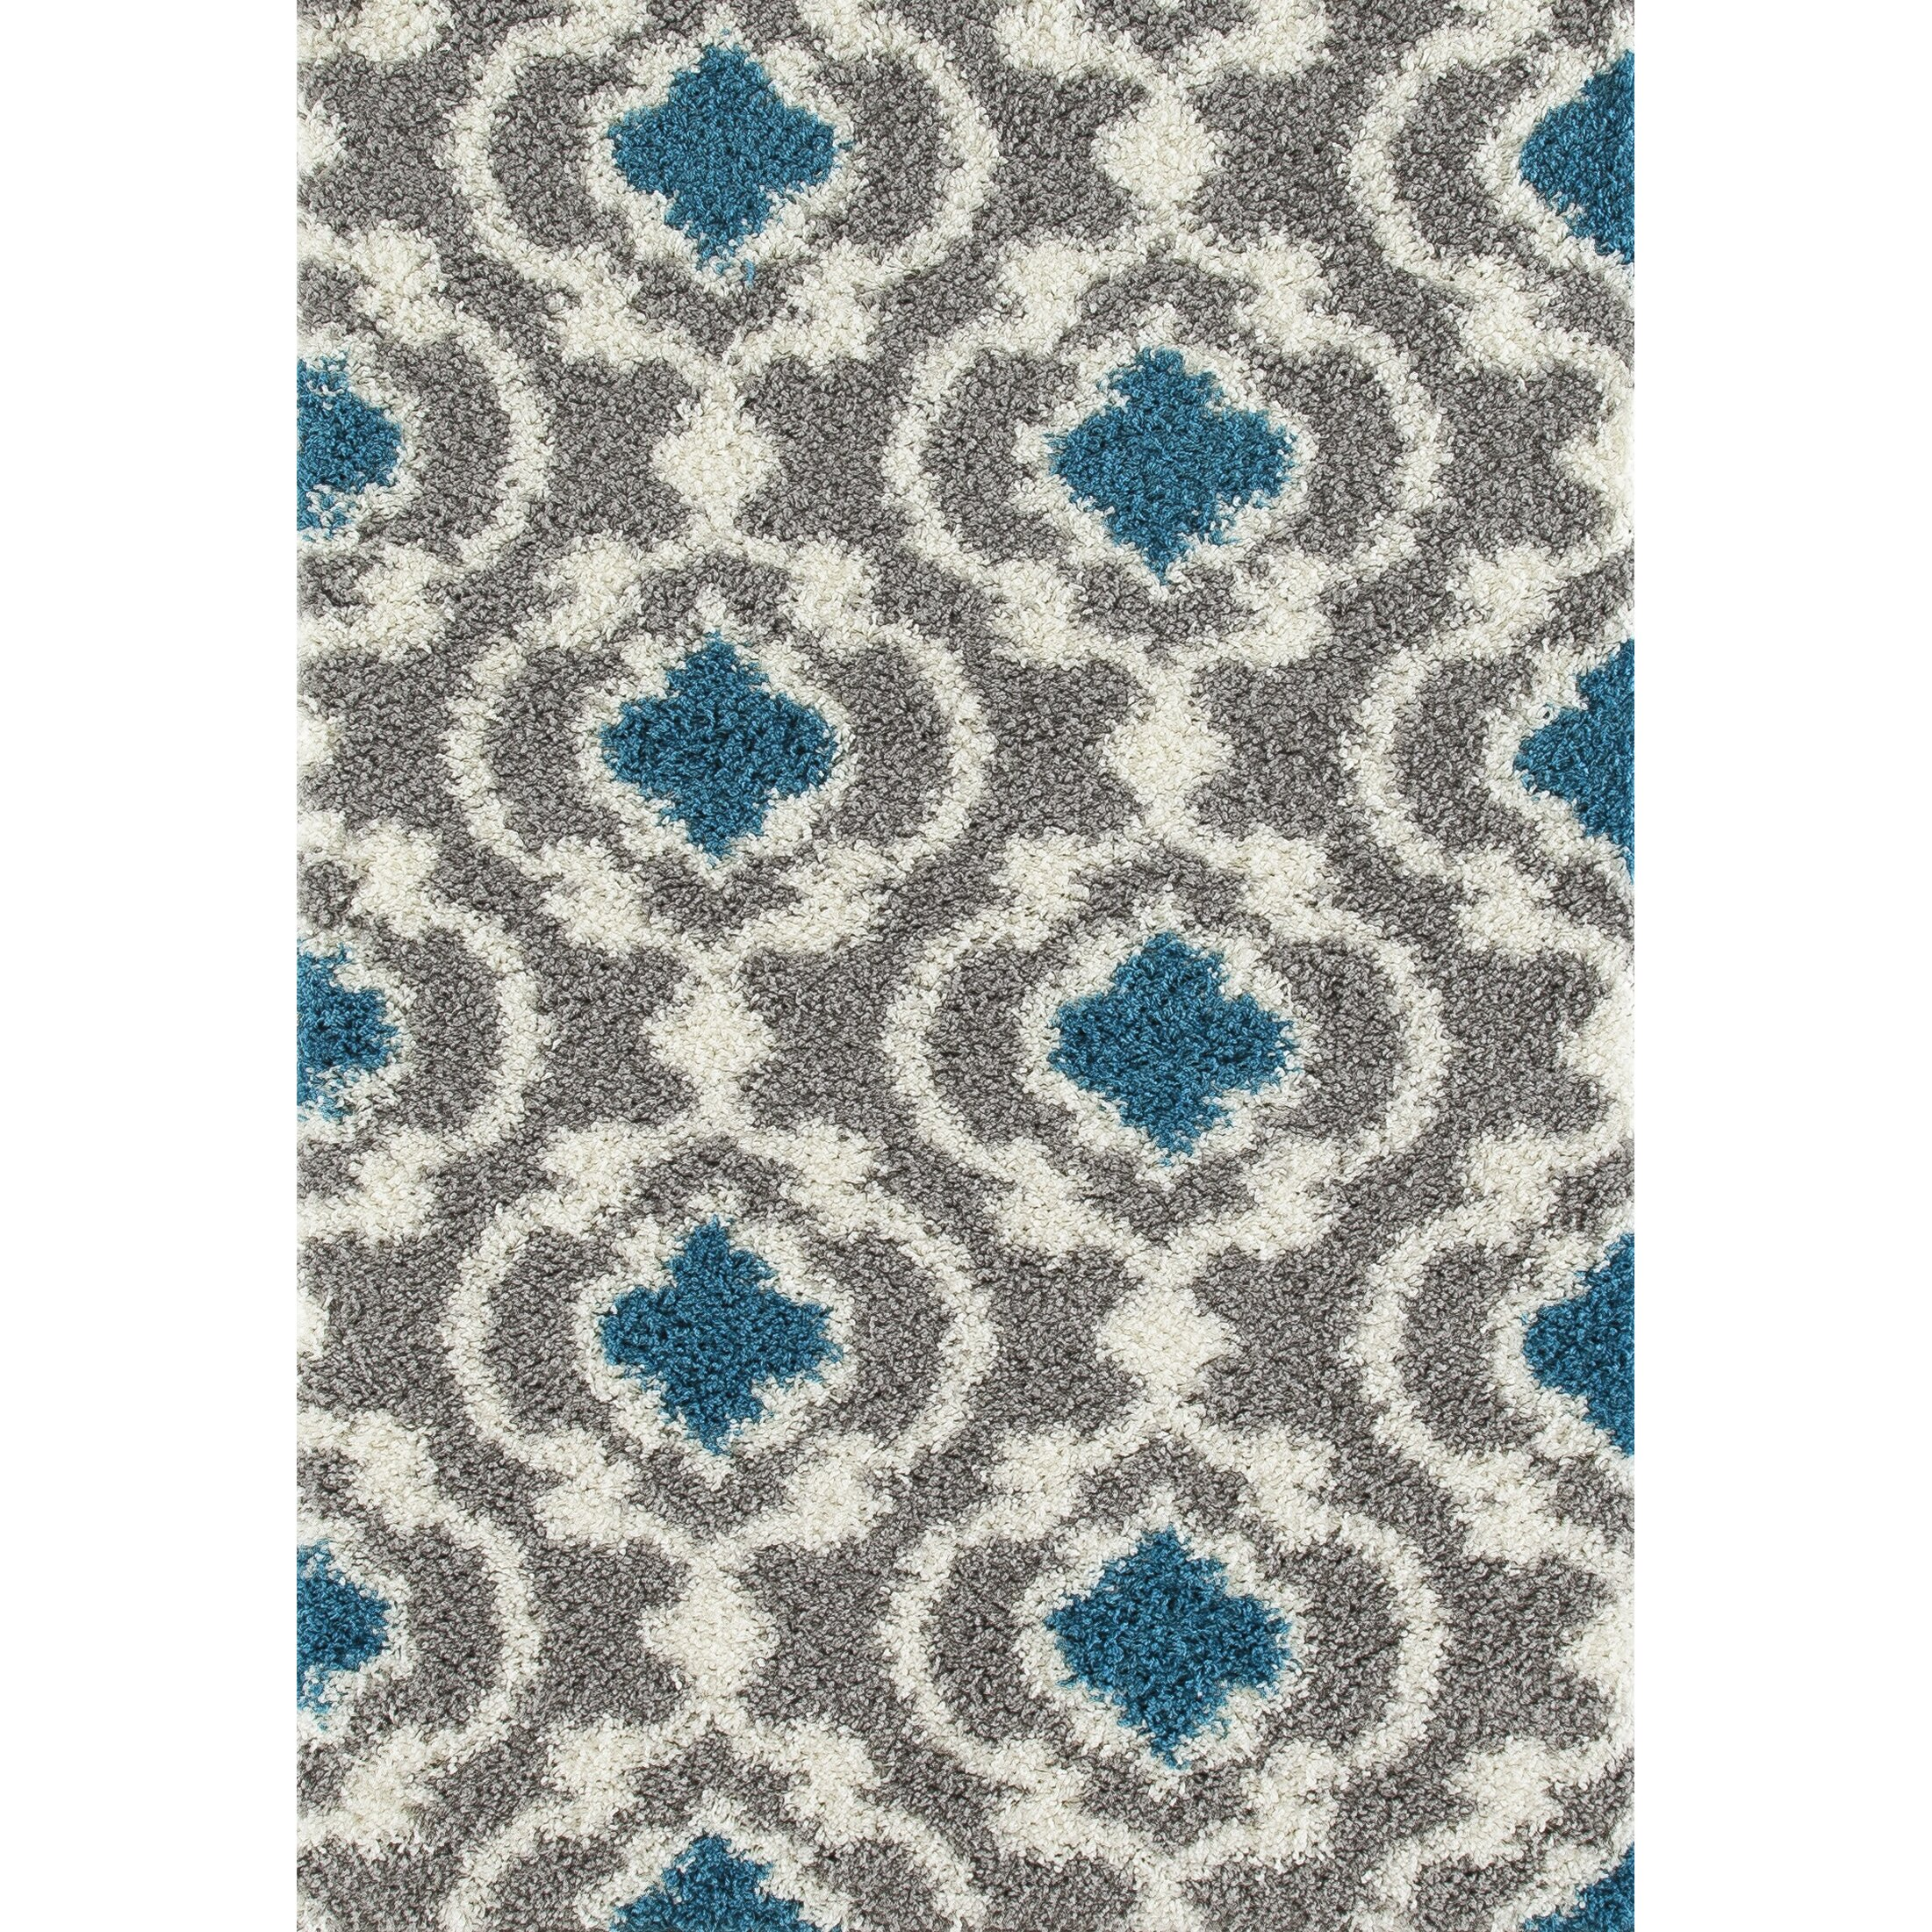 World Rug Gallery Florida GrayTurquoise Area Rug  : Florida Gray Turquoise Area Rug from www.wayfair.com size 2201 x 2201 jpeg 1936kB